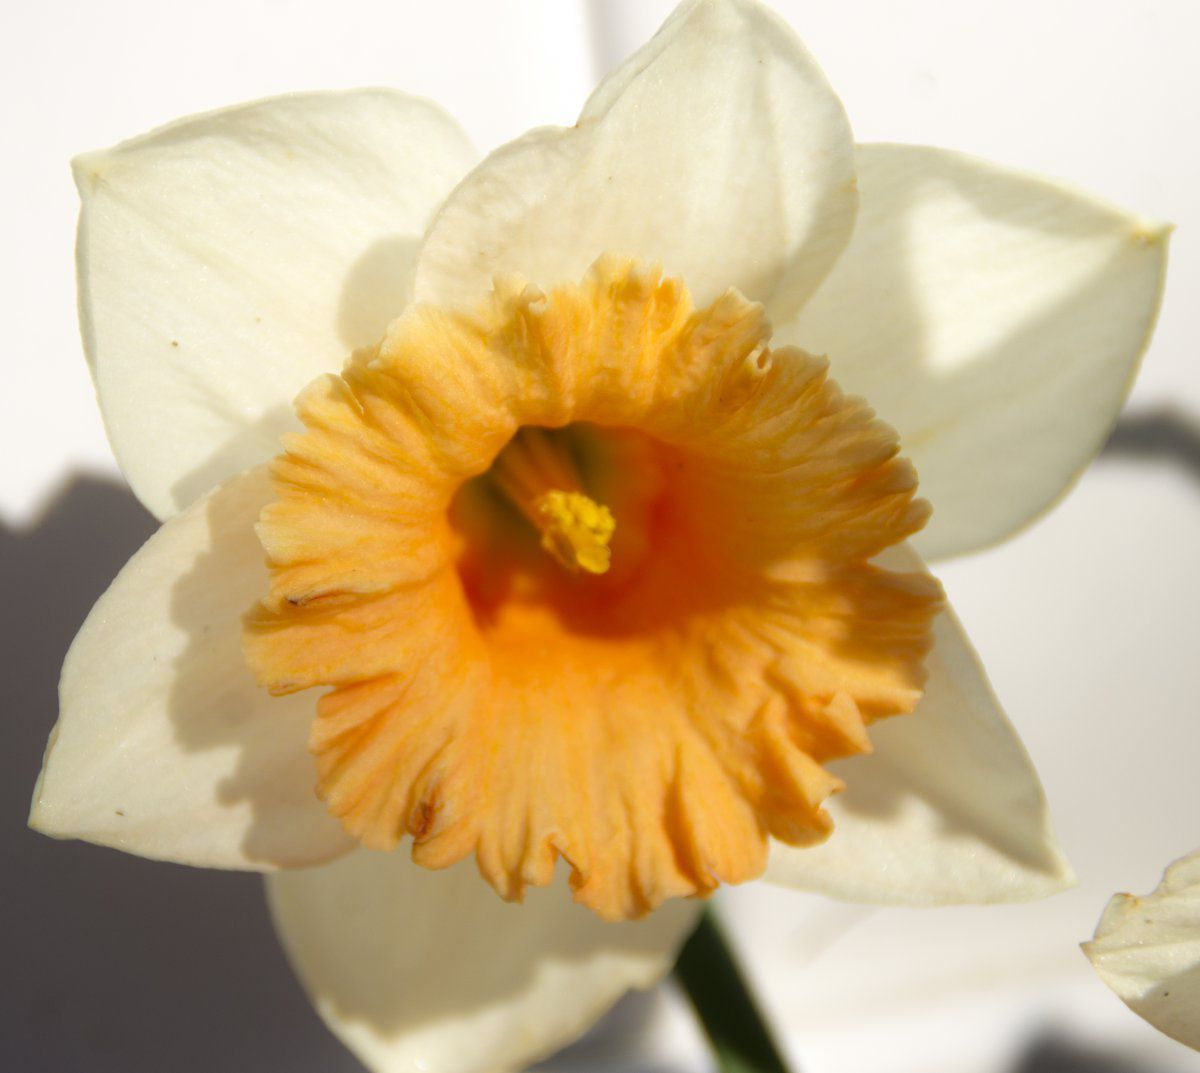 2014-05-04 Narcissus 'Pink Large Cupped Faith' (close-up).jpg